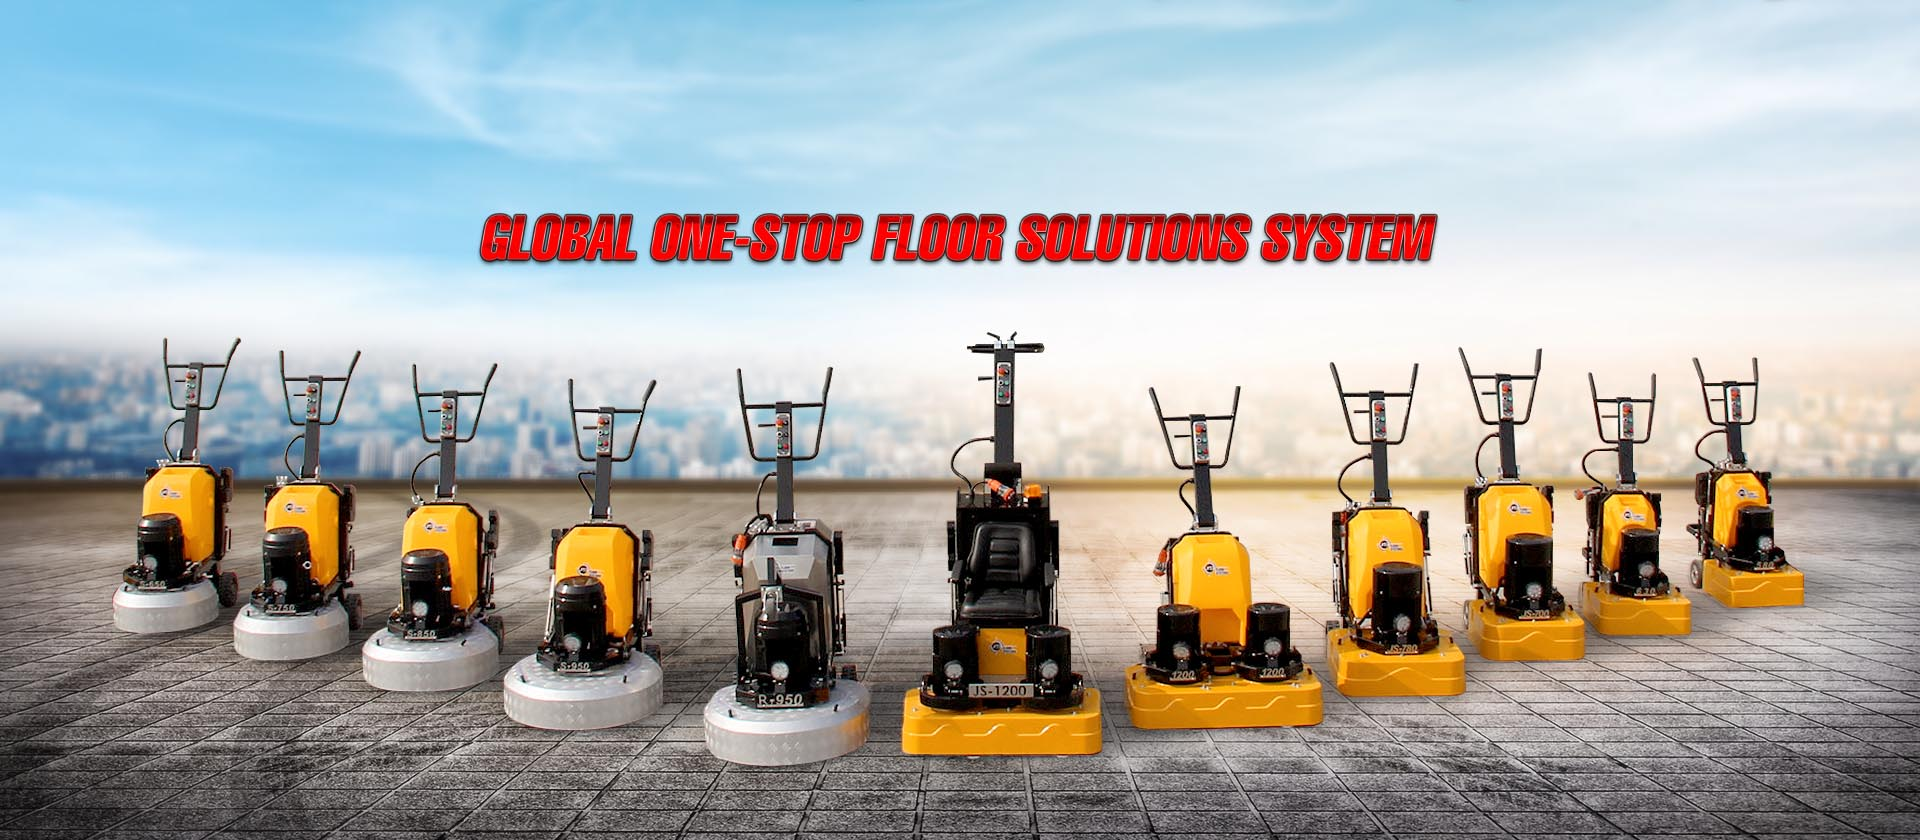 Global One-stop floor solutions